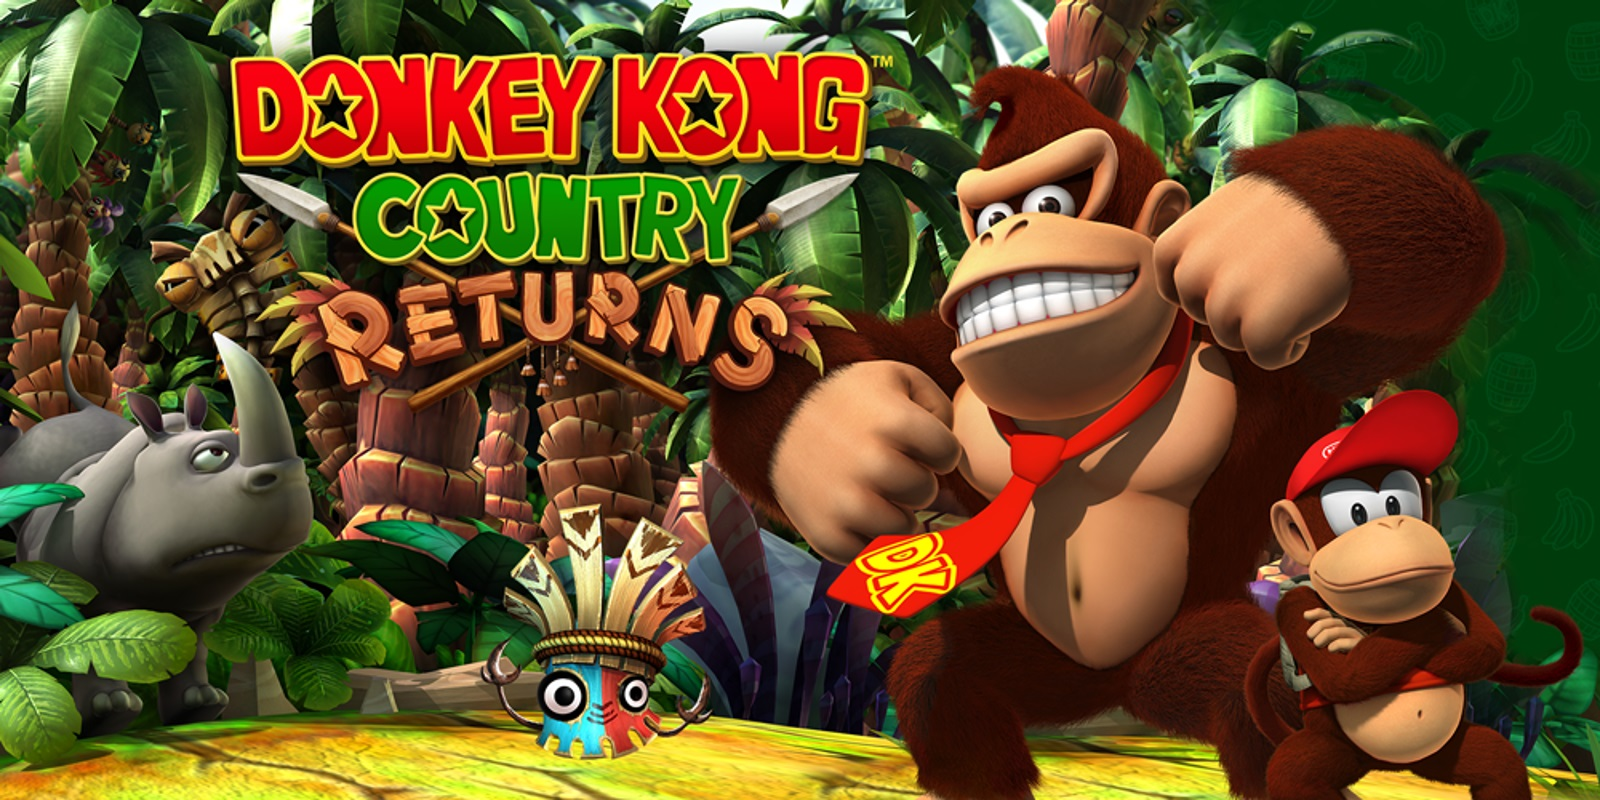 Donkey Kong Country Returns appears to be the next Wii game for NVIDIA Shield in China